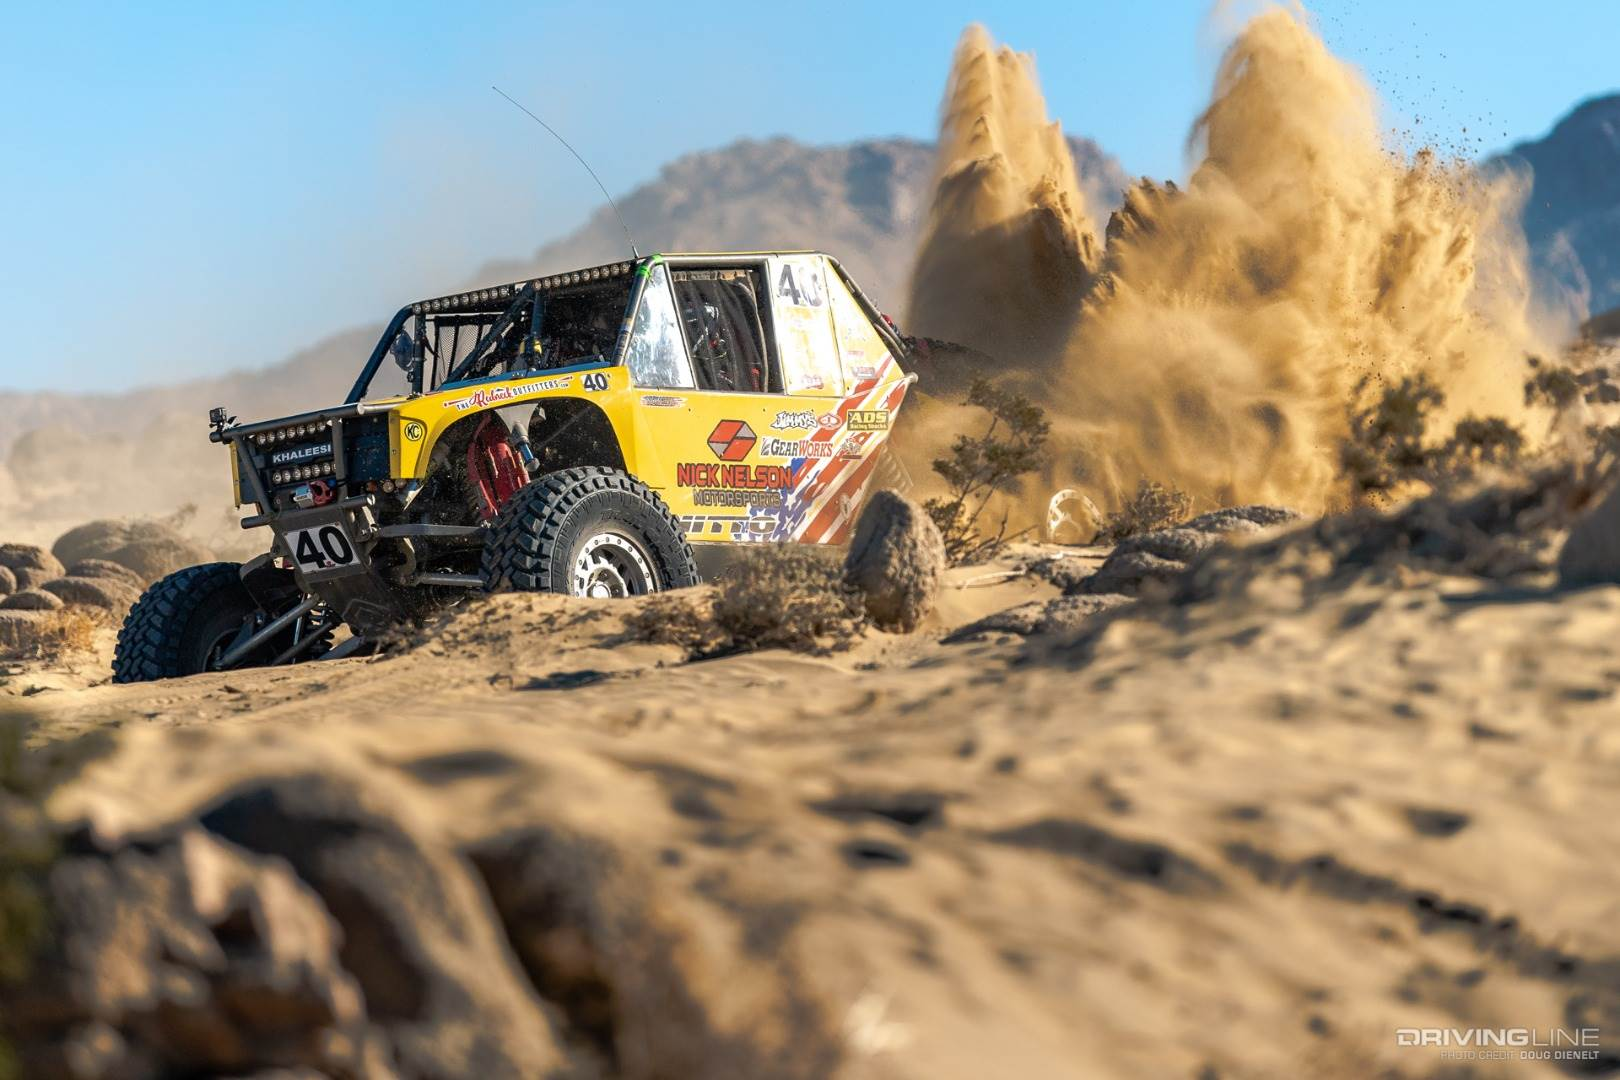 Nick Nelson's rig kicking up dirt in the desert